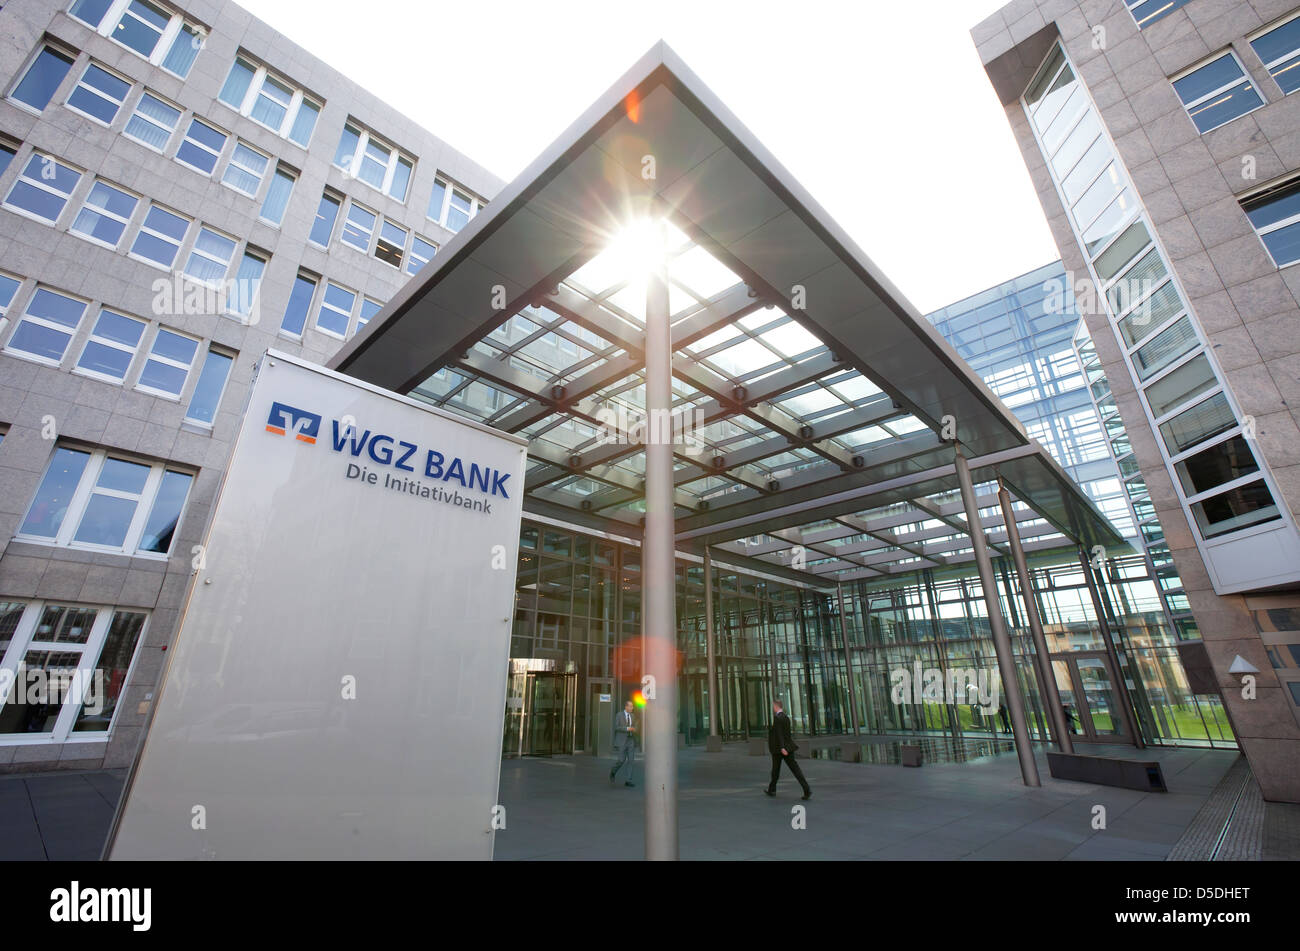 Duesseldorf, Germany, headquarters of the WGZ Bank - Stock Image